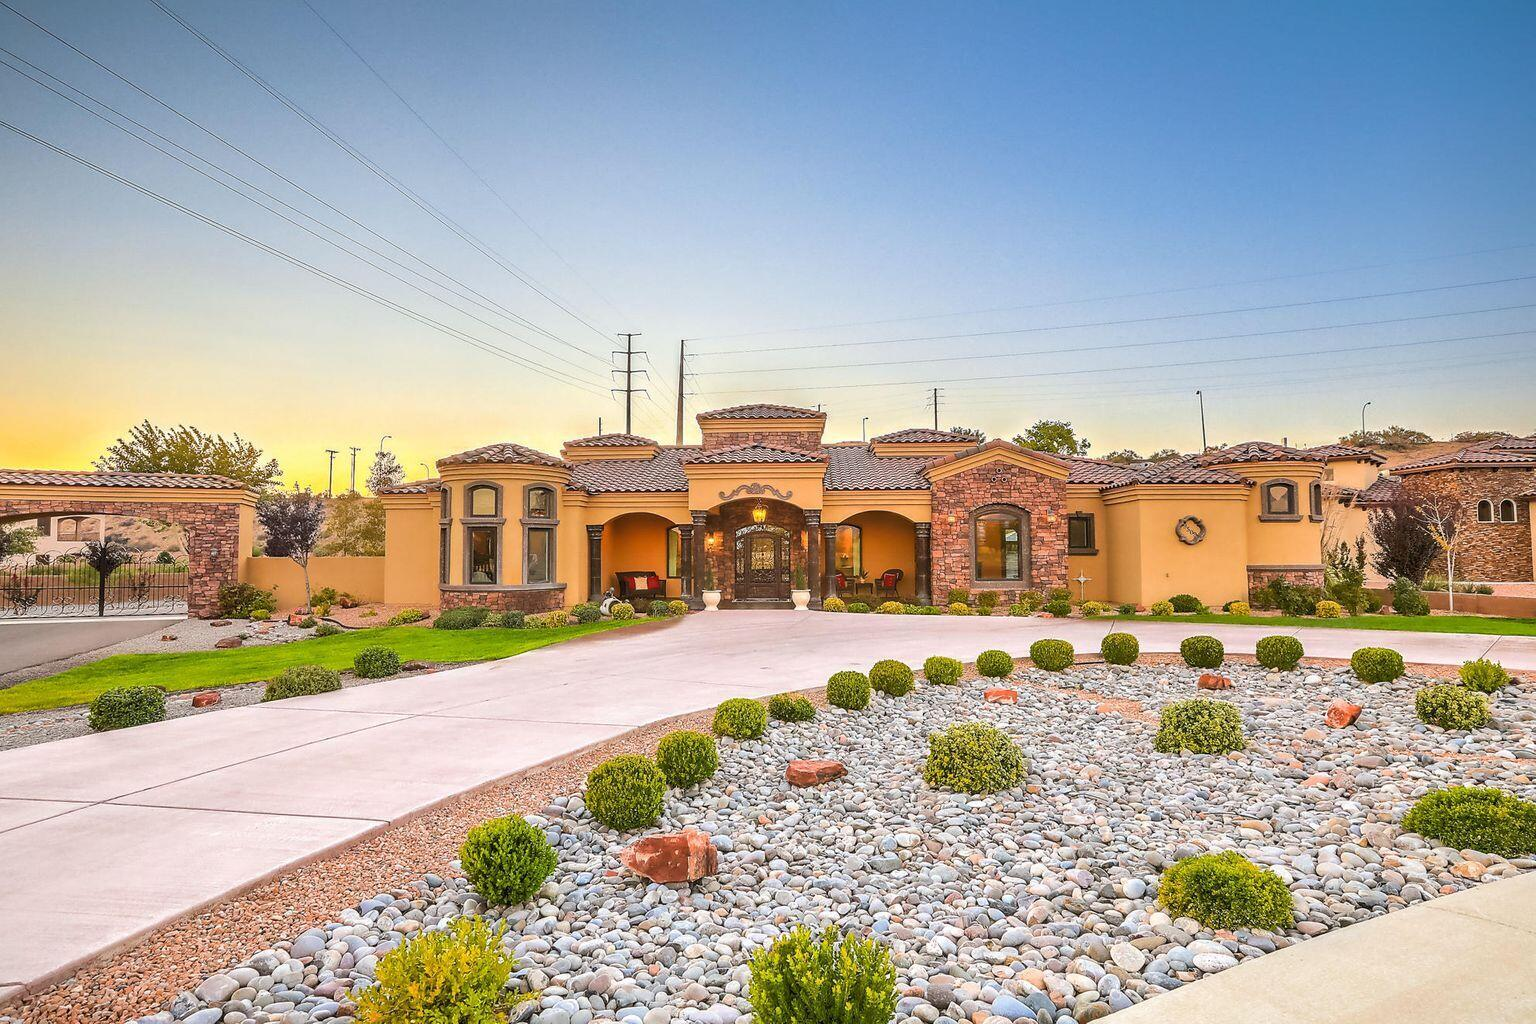 Welcome home to this breathtaking custom Tuscan residence in thesought-after neighborhood Black Farm Estates. This beautifulgreen-built home sits on 1.28 acres and will amaze you with itsluxurious details and exquisite interior finishes including elegantdrapery, opulent chandeliers, Cantera stone columns, a magnificentcustom metal entry door, and custom textured walls with designer suedepaint throughout. This home boasts 4 large bedrooms, each with its own ensuite bathroom and walk-in closet. The dedicated master wing offers a large master suite with a spa-like bathroom, complete with a palatial walk-inshower, custom vanities, and spa jet tub. The kitchen is a chef'sdelight and designed for entertaining with bar seating, customcabinetry, oversized island, and butler's pan